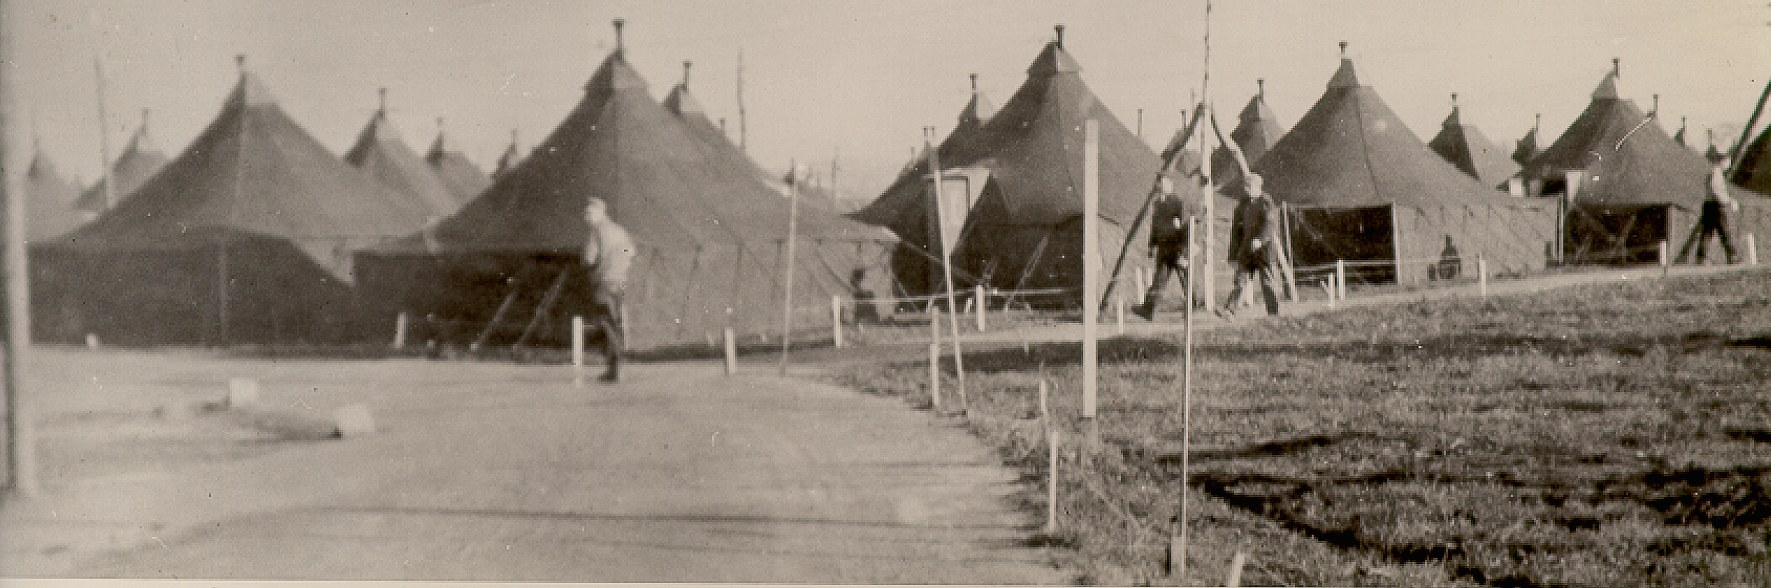 The tents that made up the POW camp